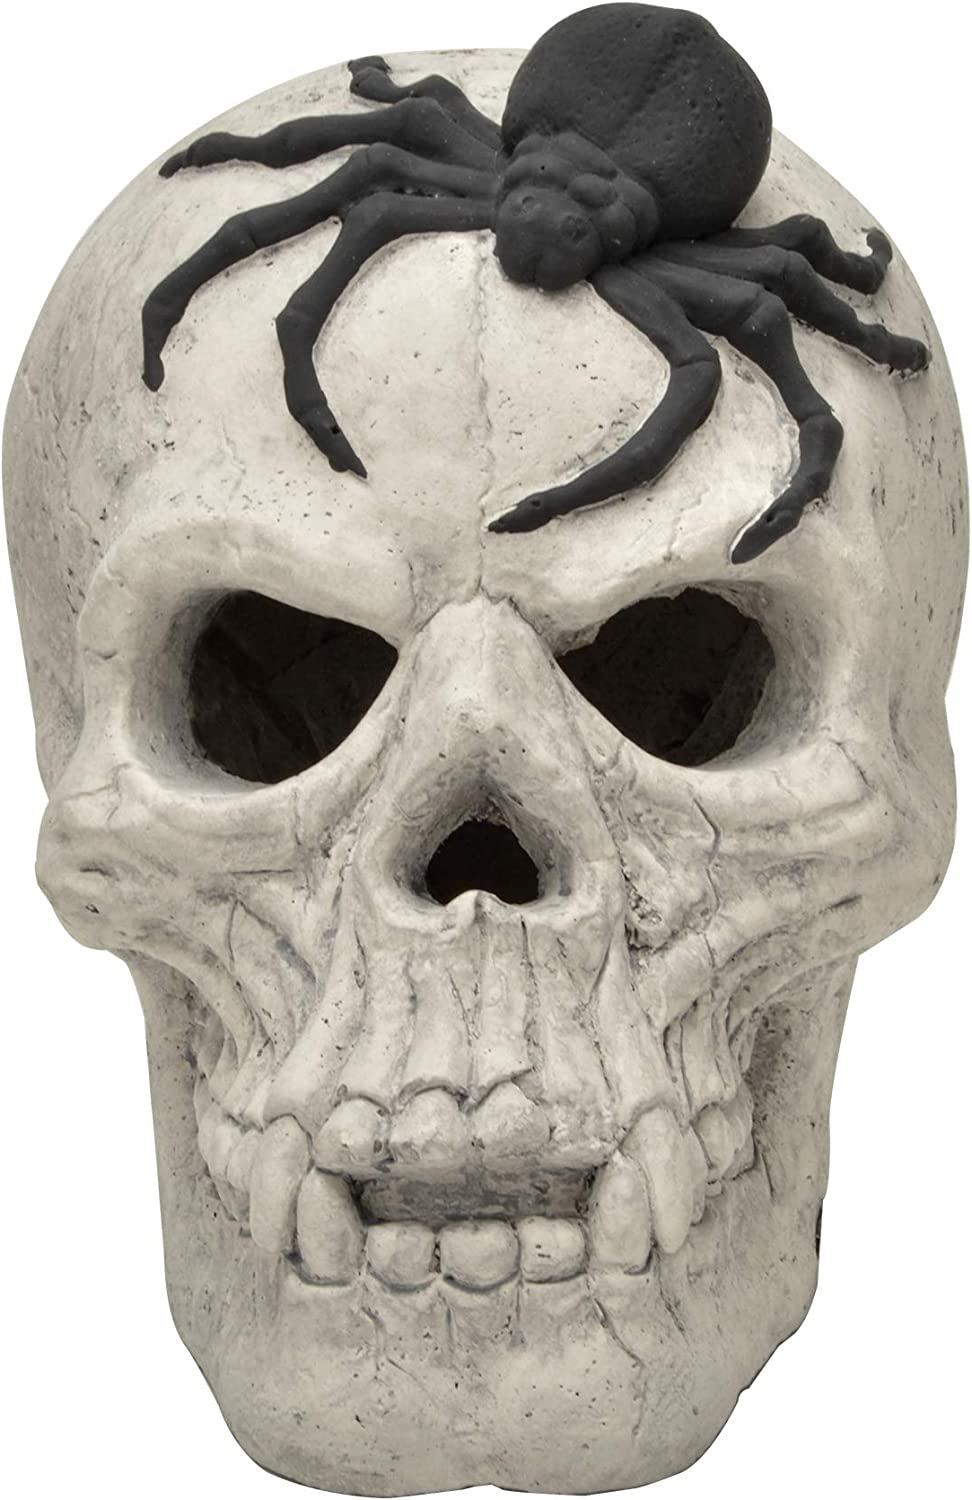 Stanbroil Fire Pits Imitated Human Skull with Black Spider Decoration for Indoors Outdoors Campfire, Fireplace, Halloween Party Decor, 1 Pack - Patent Pending